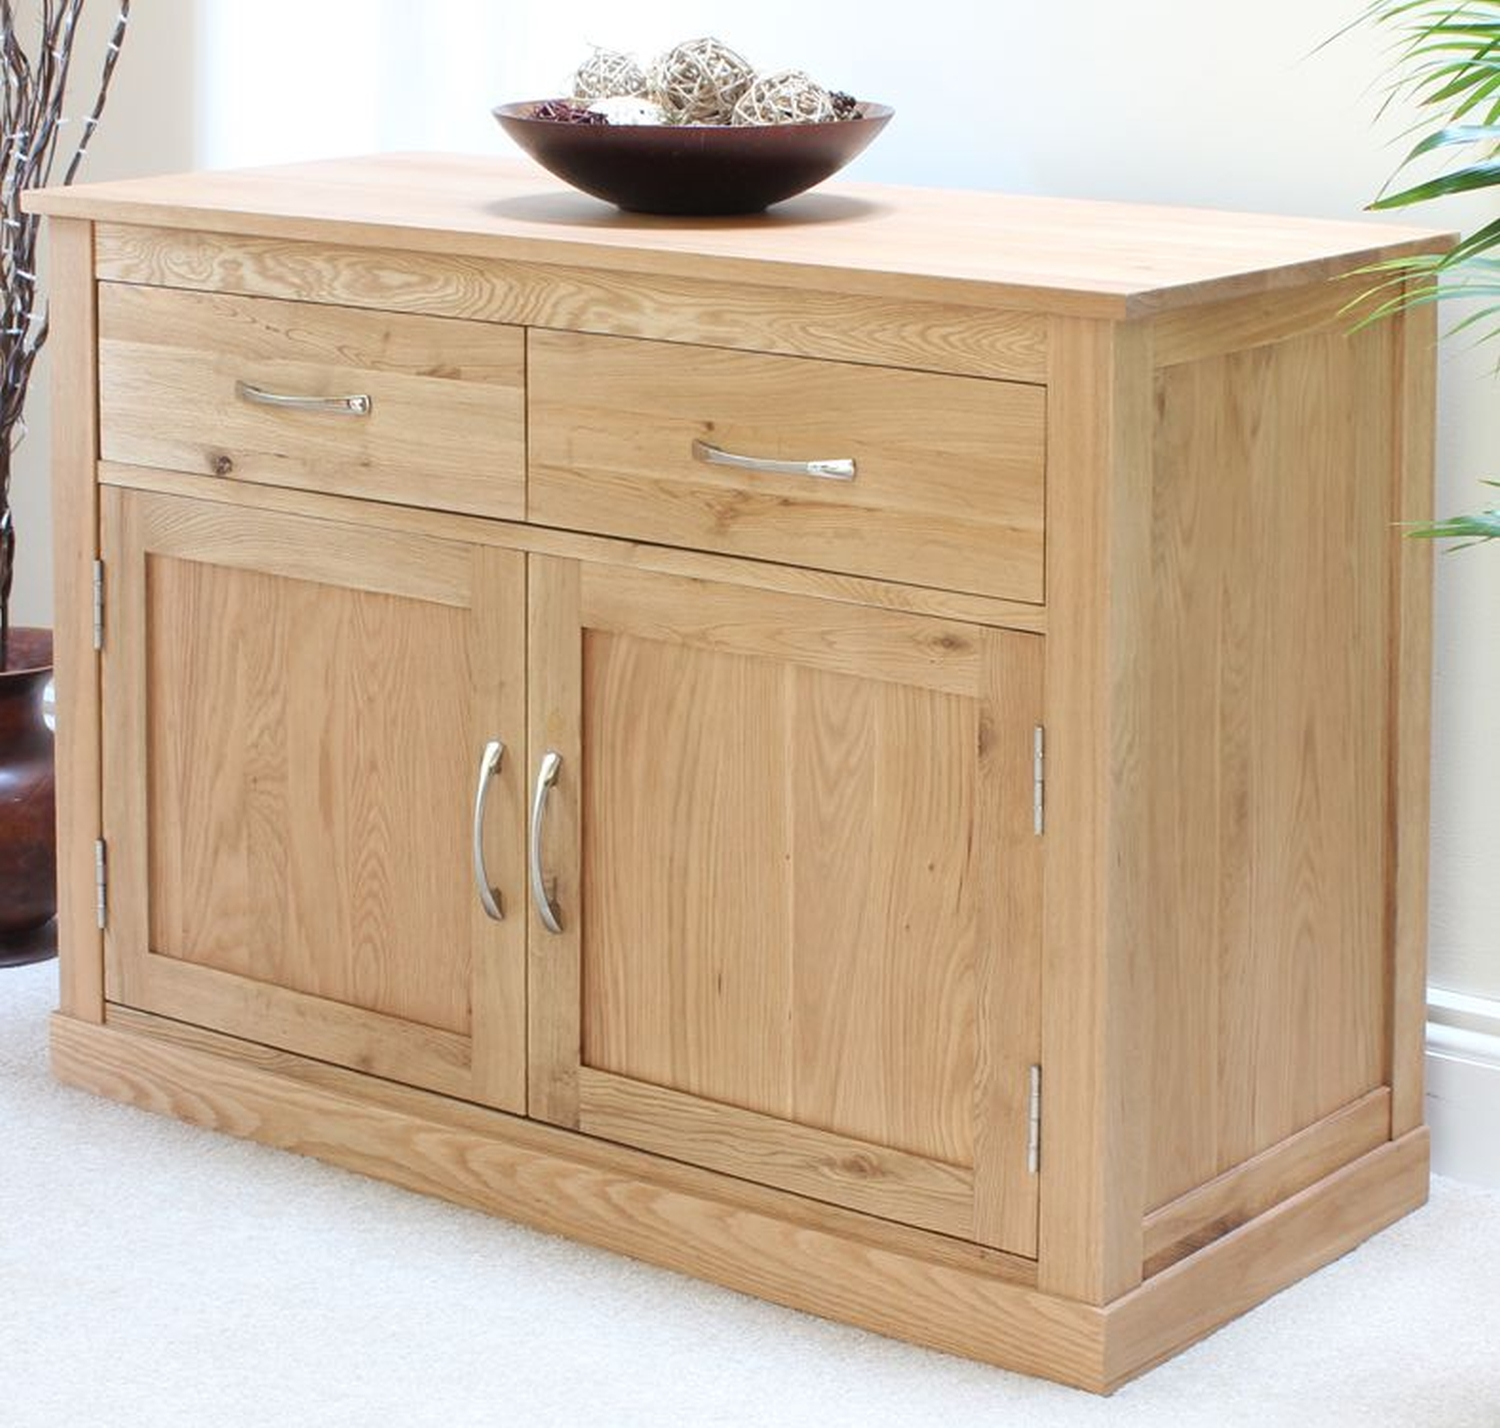 Living Dining Room Cabinets: Conran Solid Oak Furniture Sideboard Small Living Dining